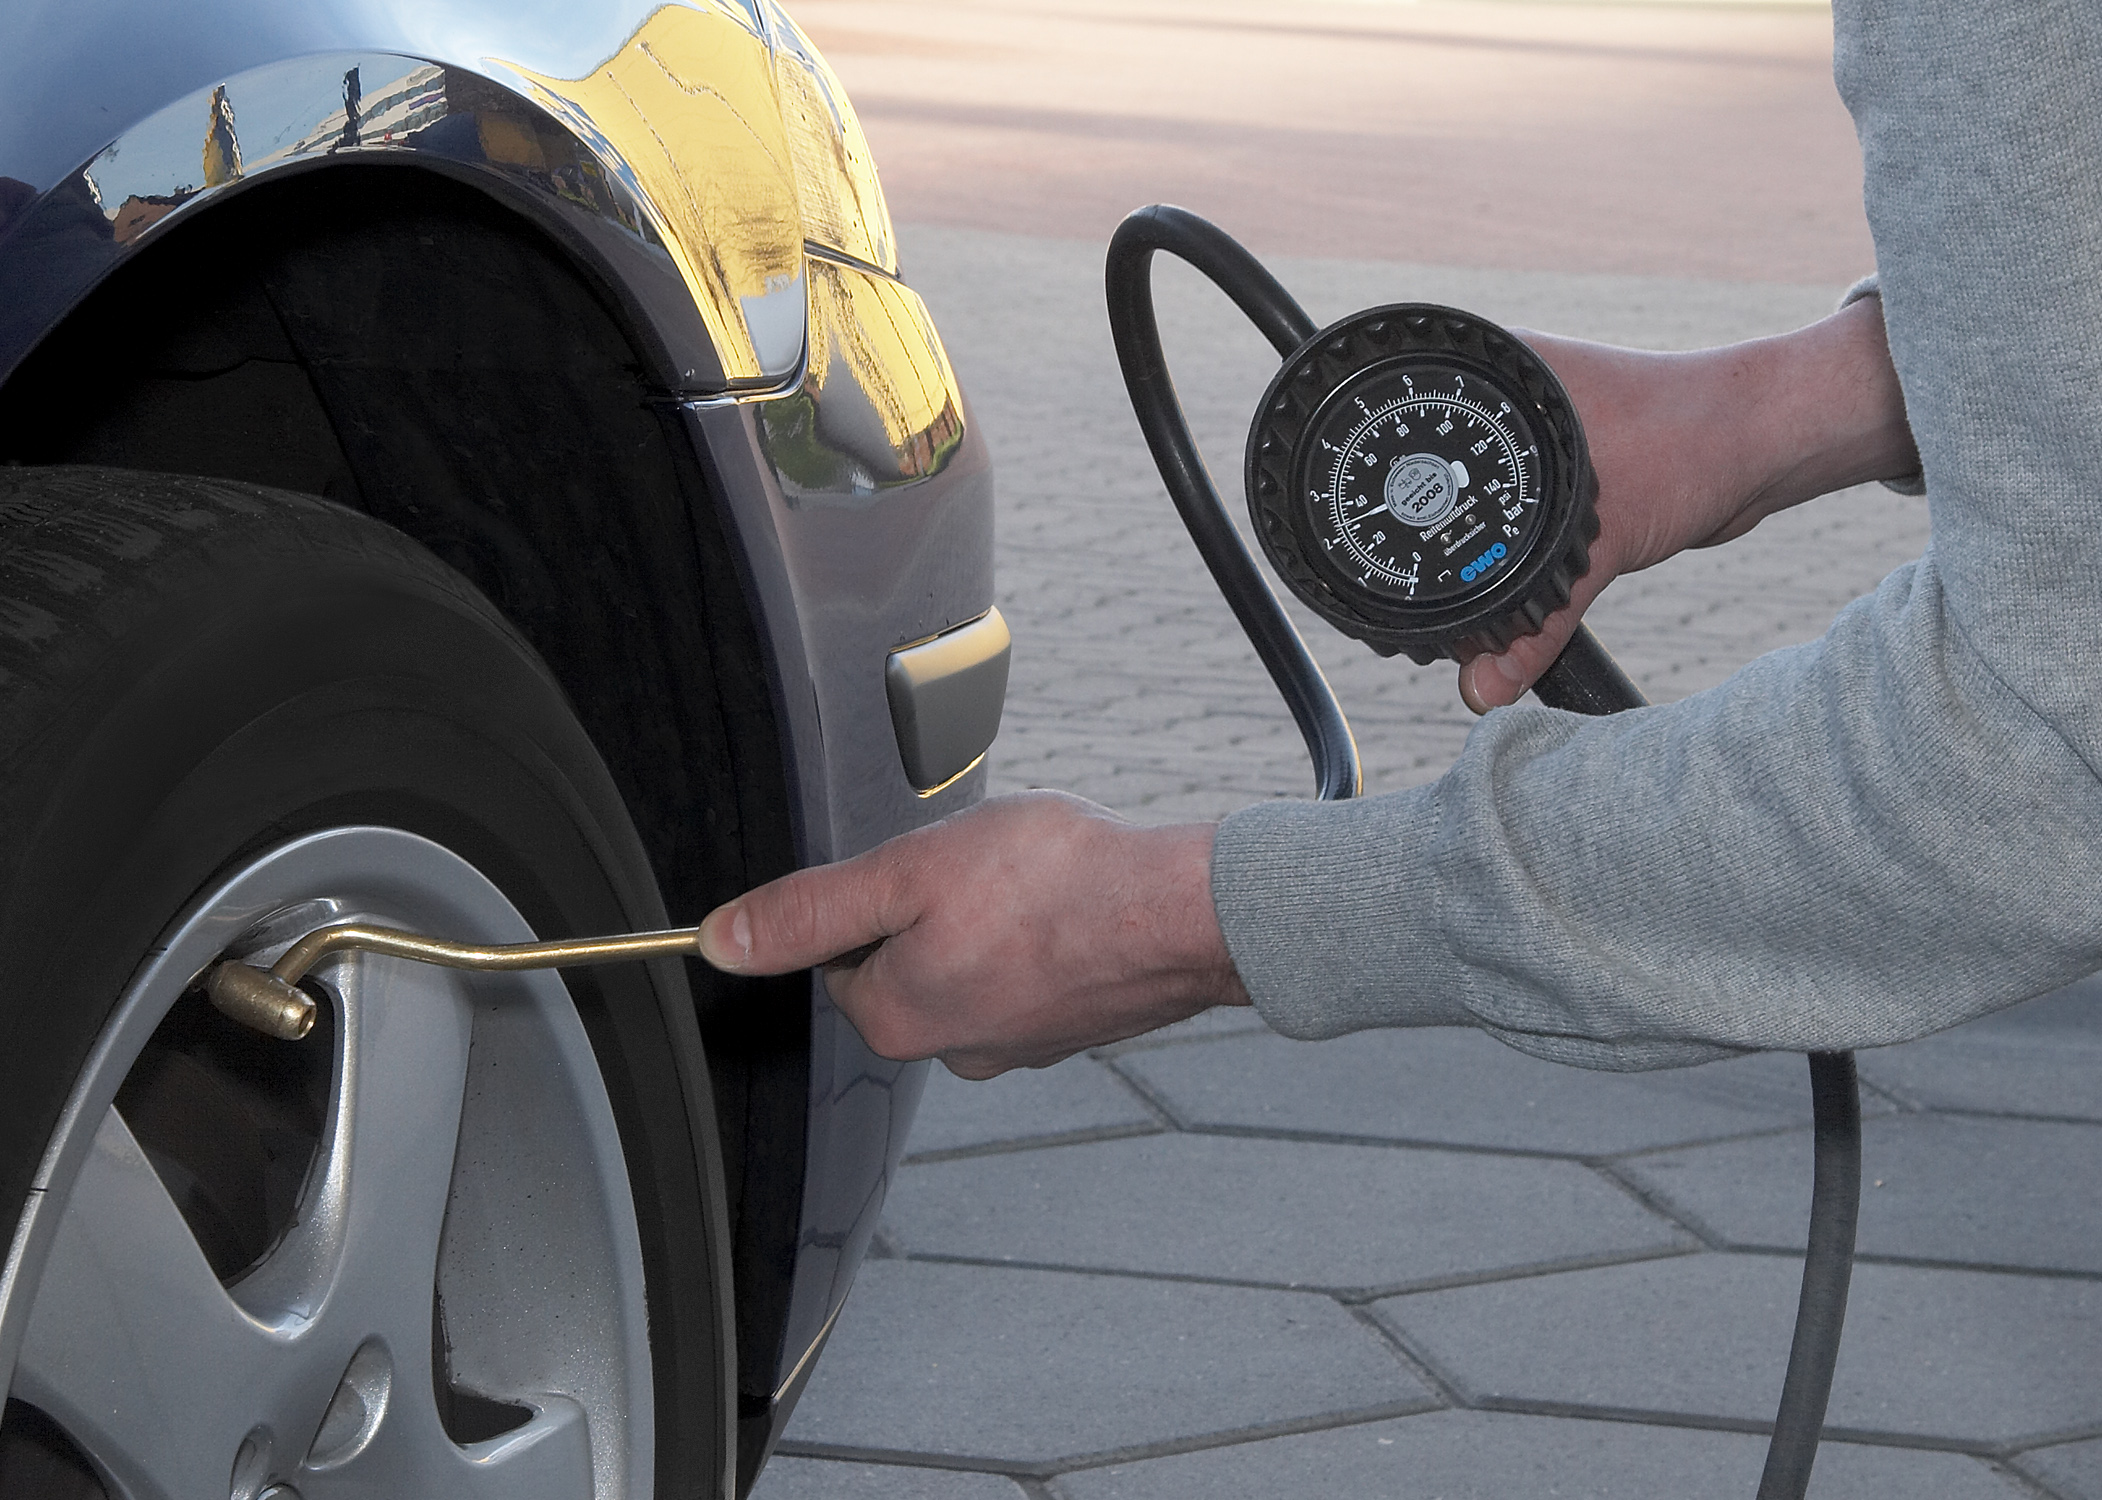 Check Your Tire Pressure Regularly